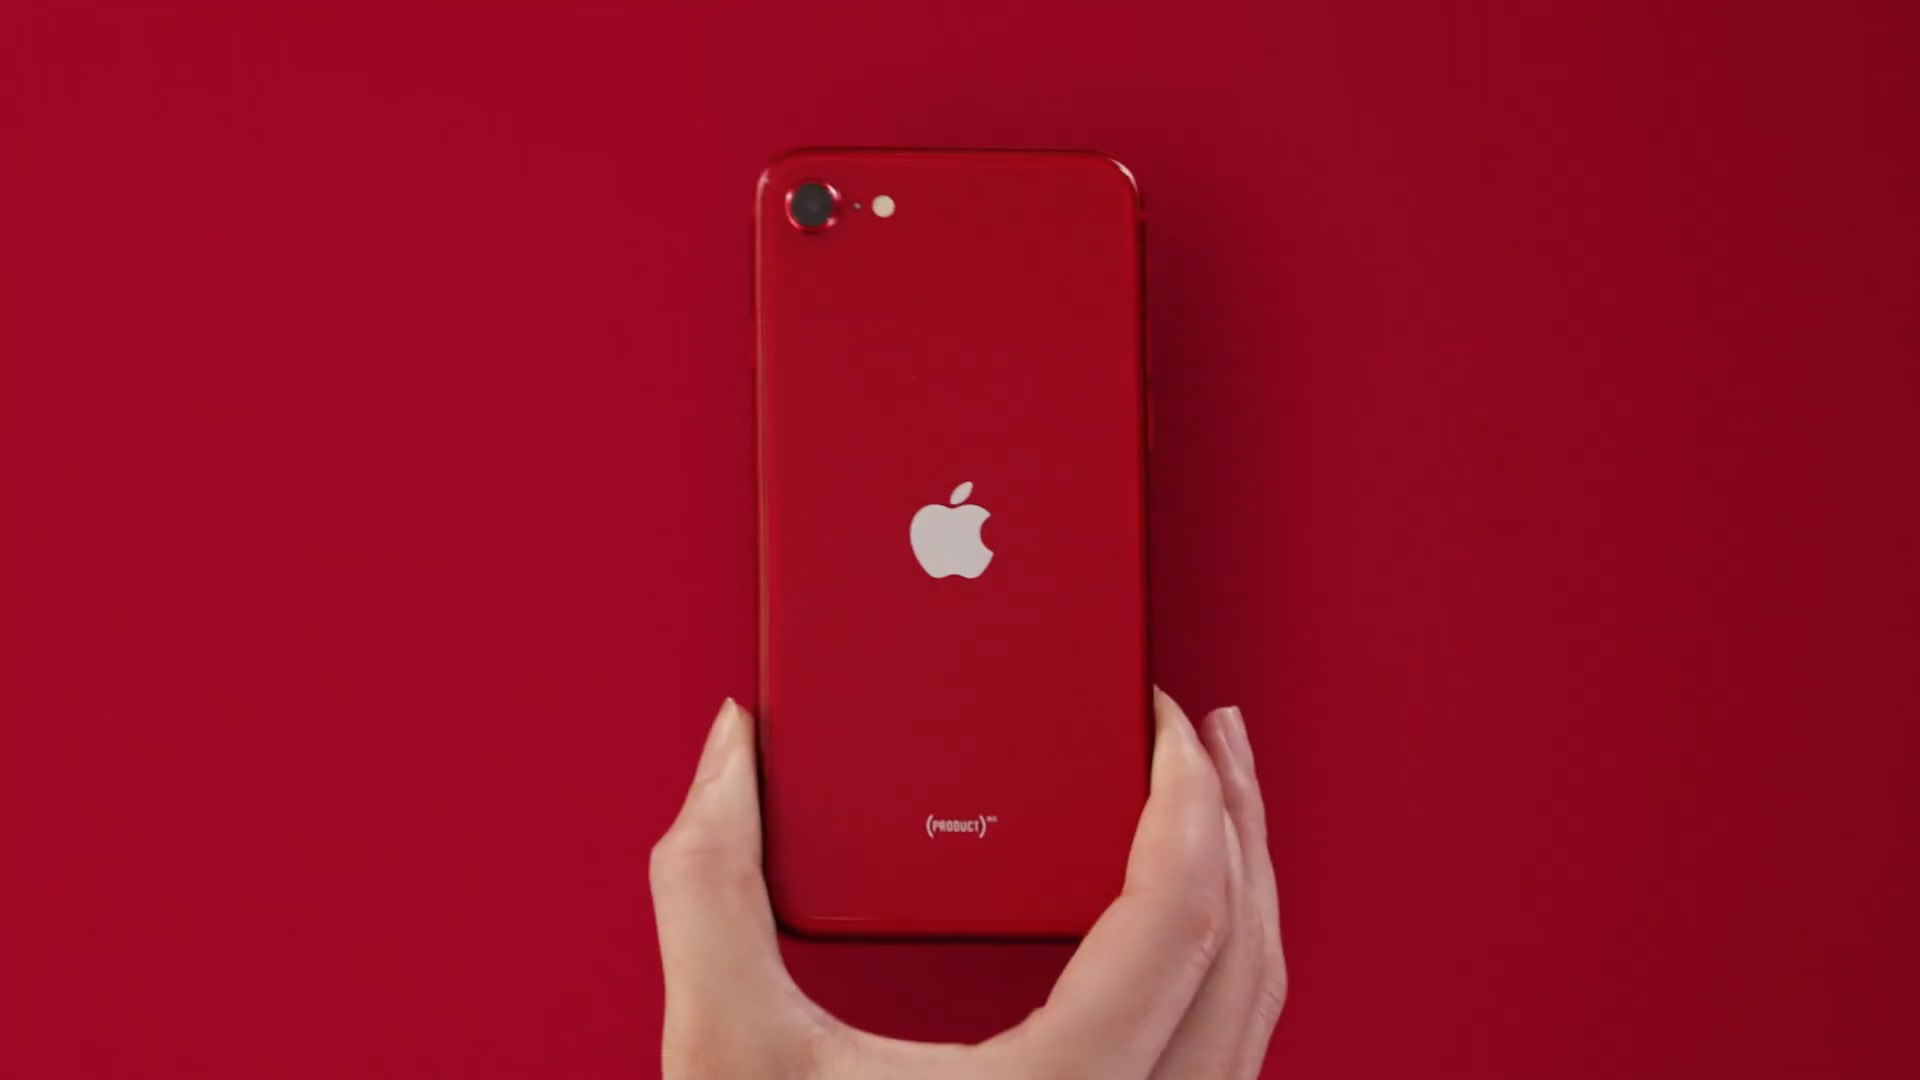 A hand showing holding a red iPhone SE 2, set against an all-red background